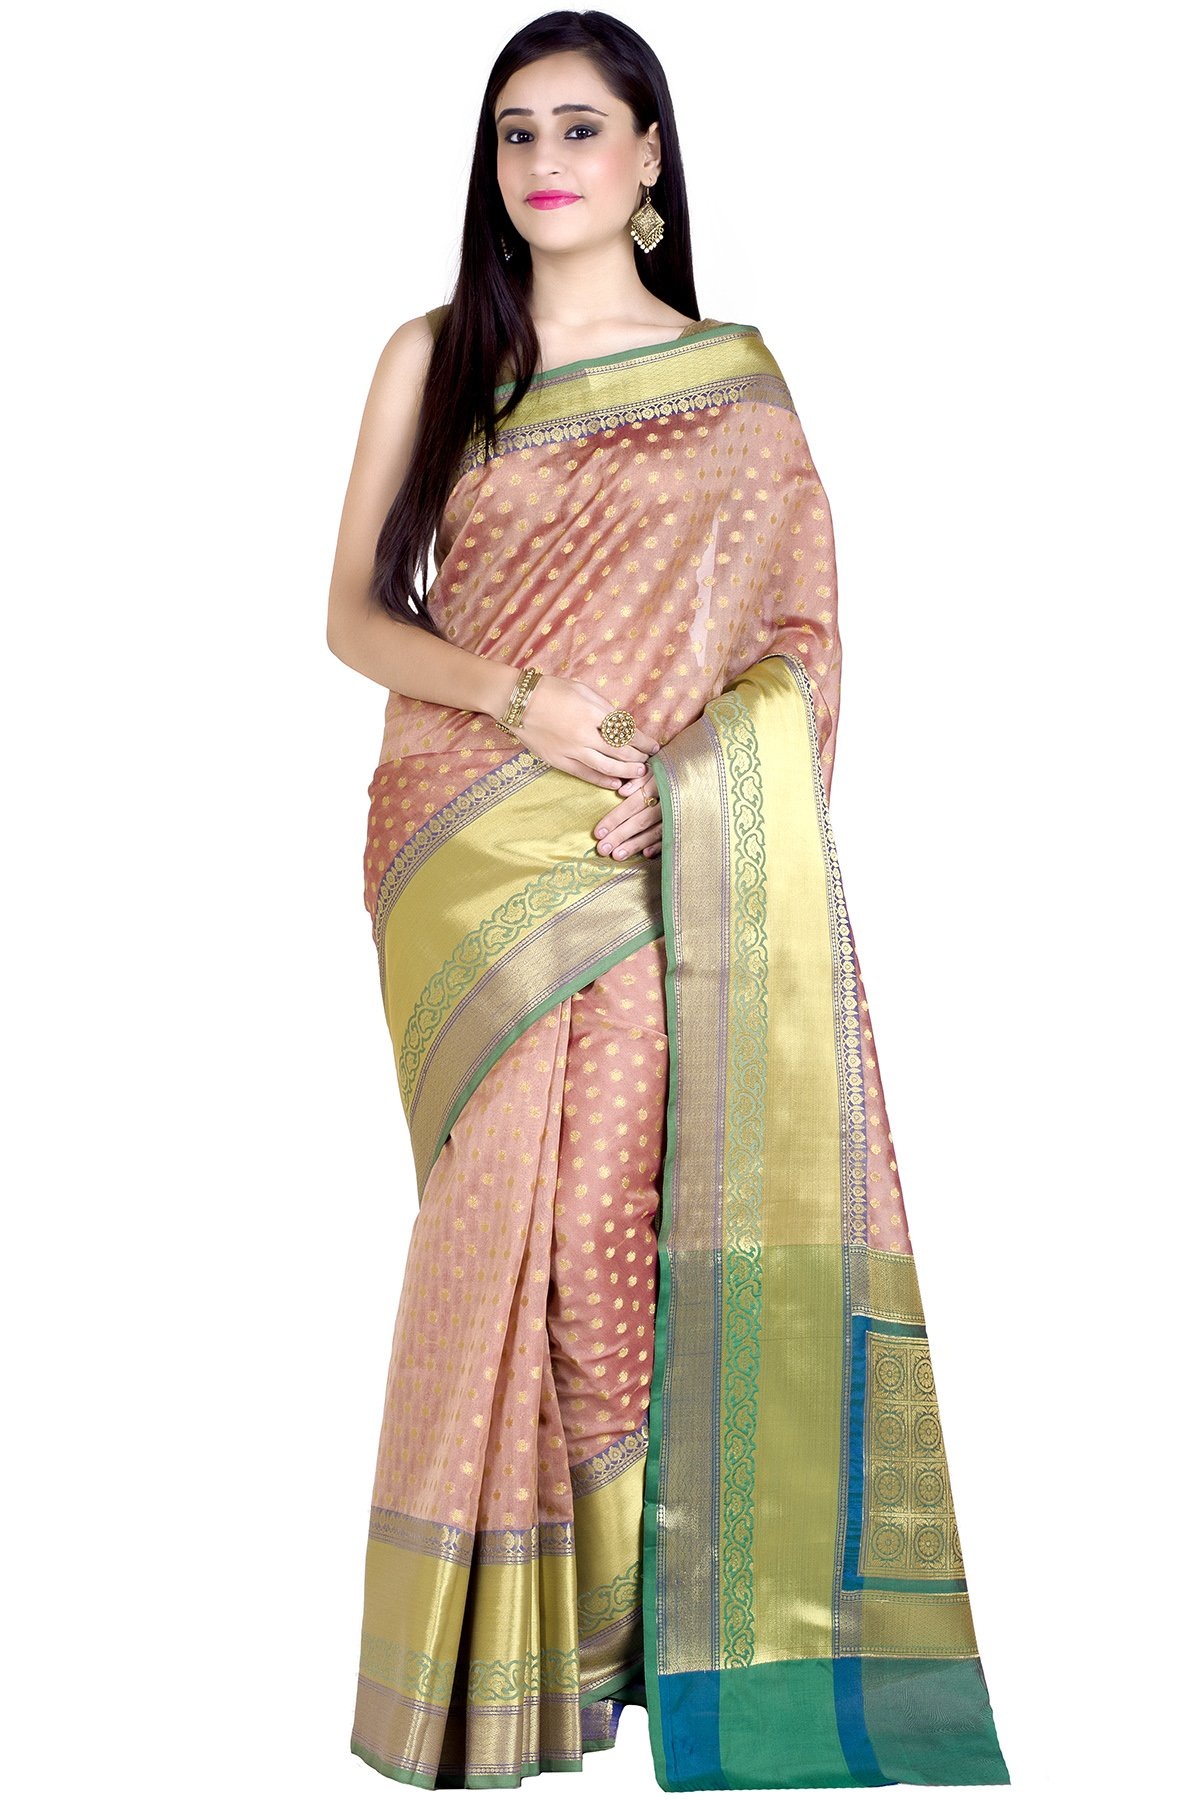 Chandrakala Women's Copper Kanjivaram Silk Traditional Saree(1241COP)